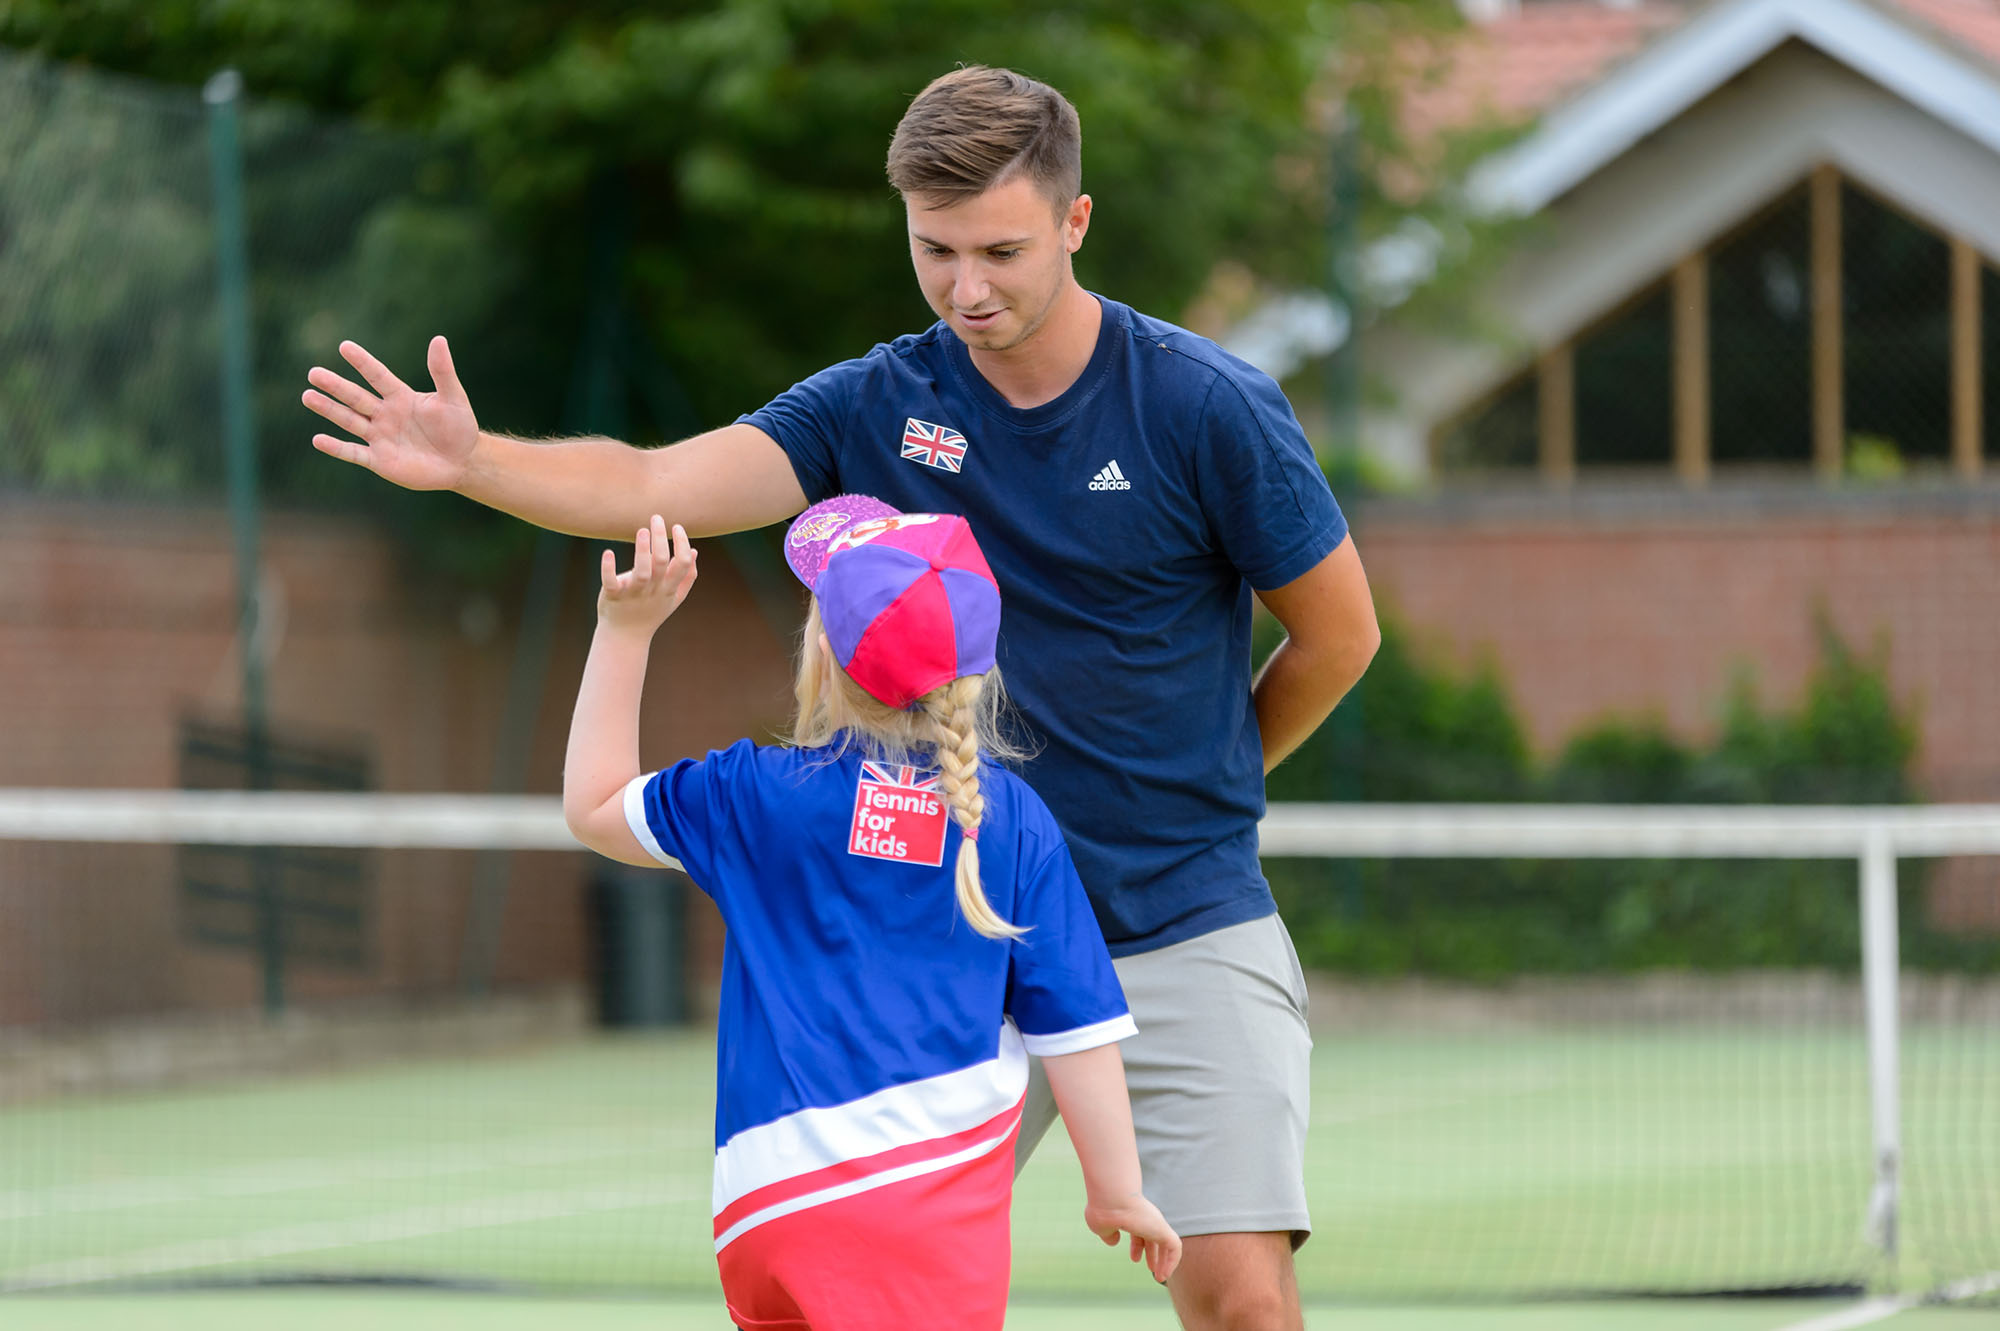 Child and coach high-five at a mini-tennis ession